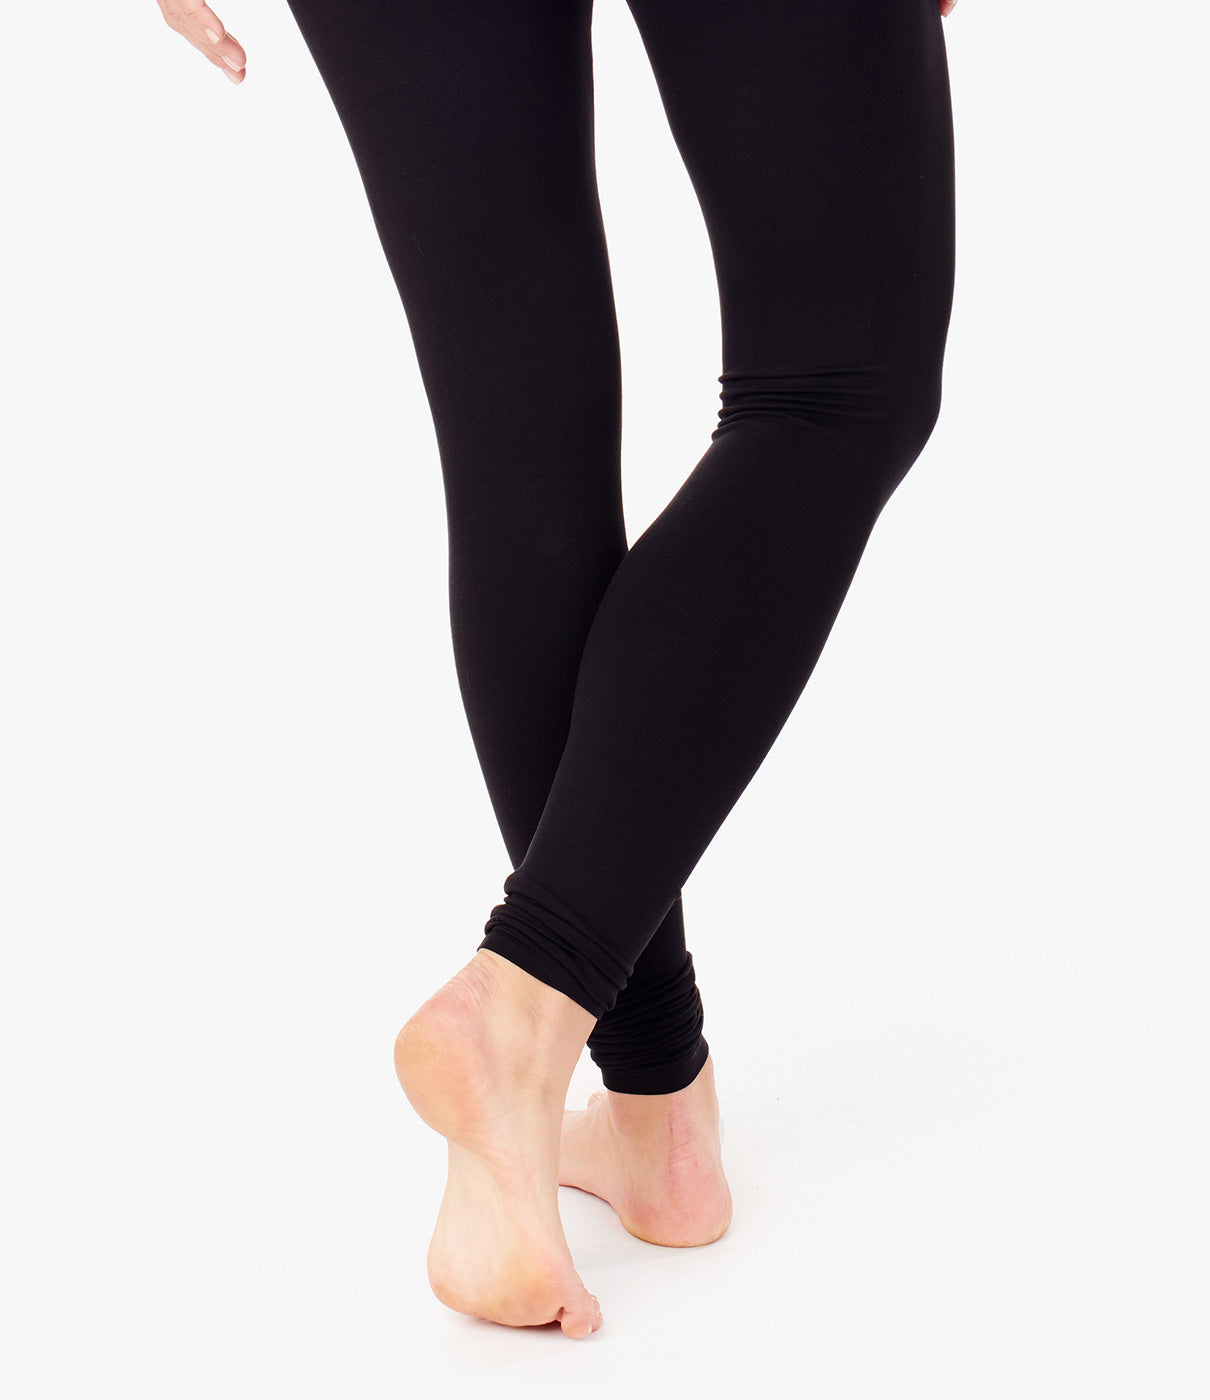 GROWS WITH YOUClassic legging that fits throughout pregnancy and after.